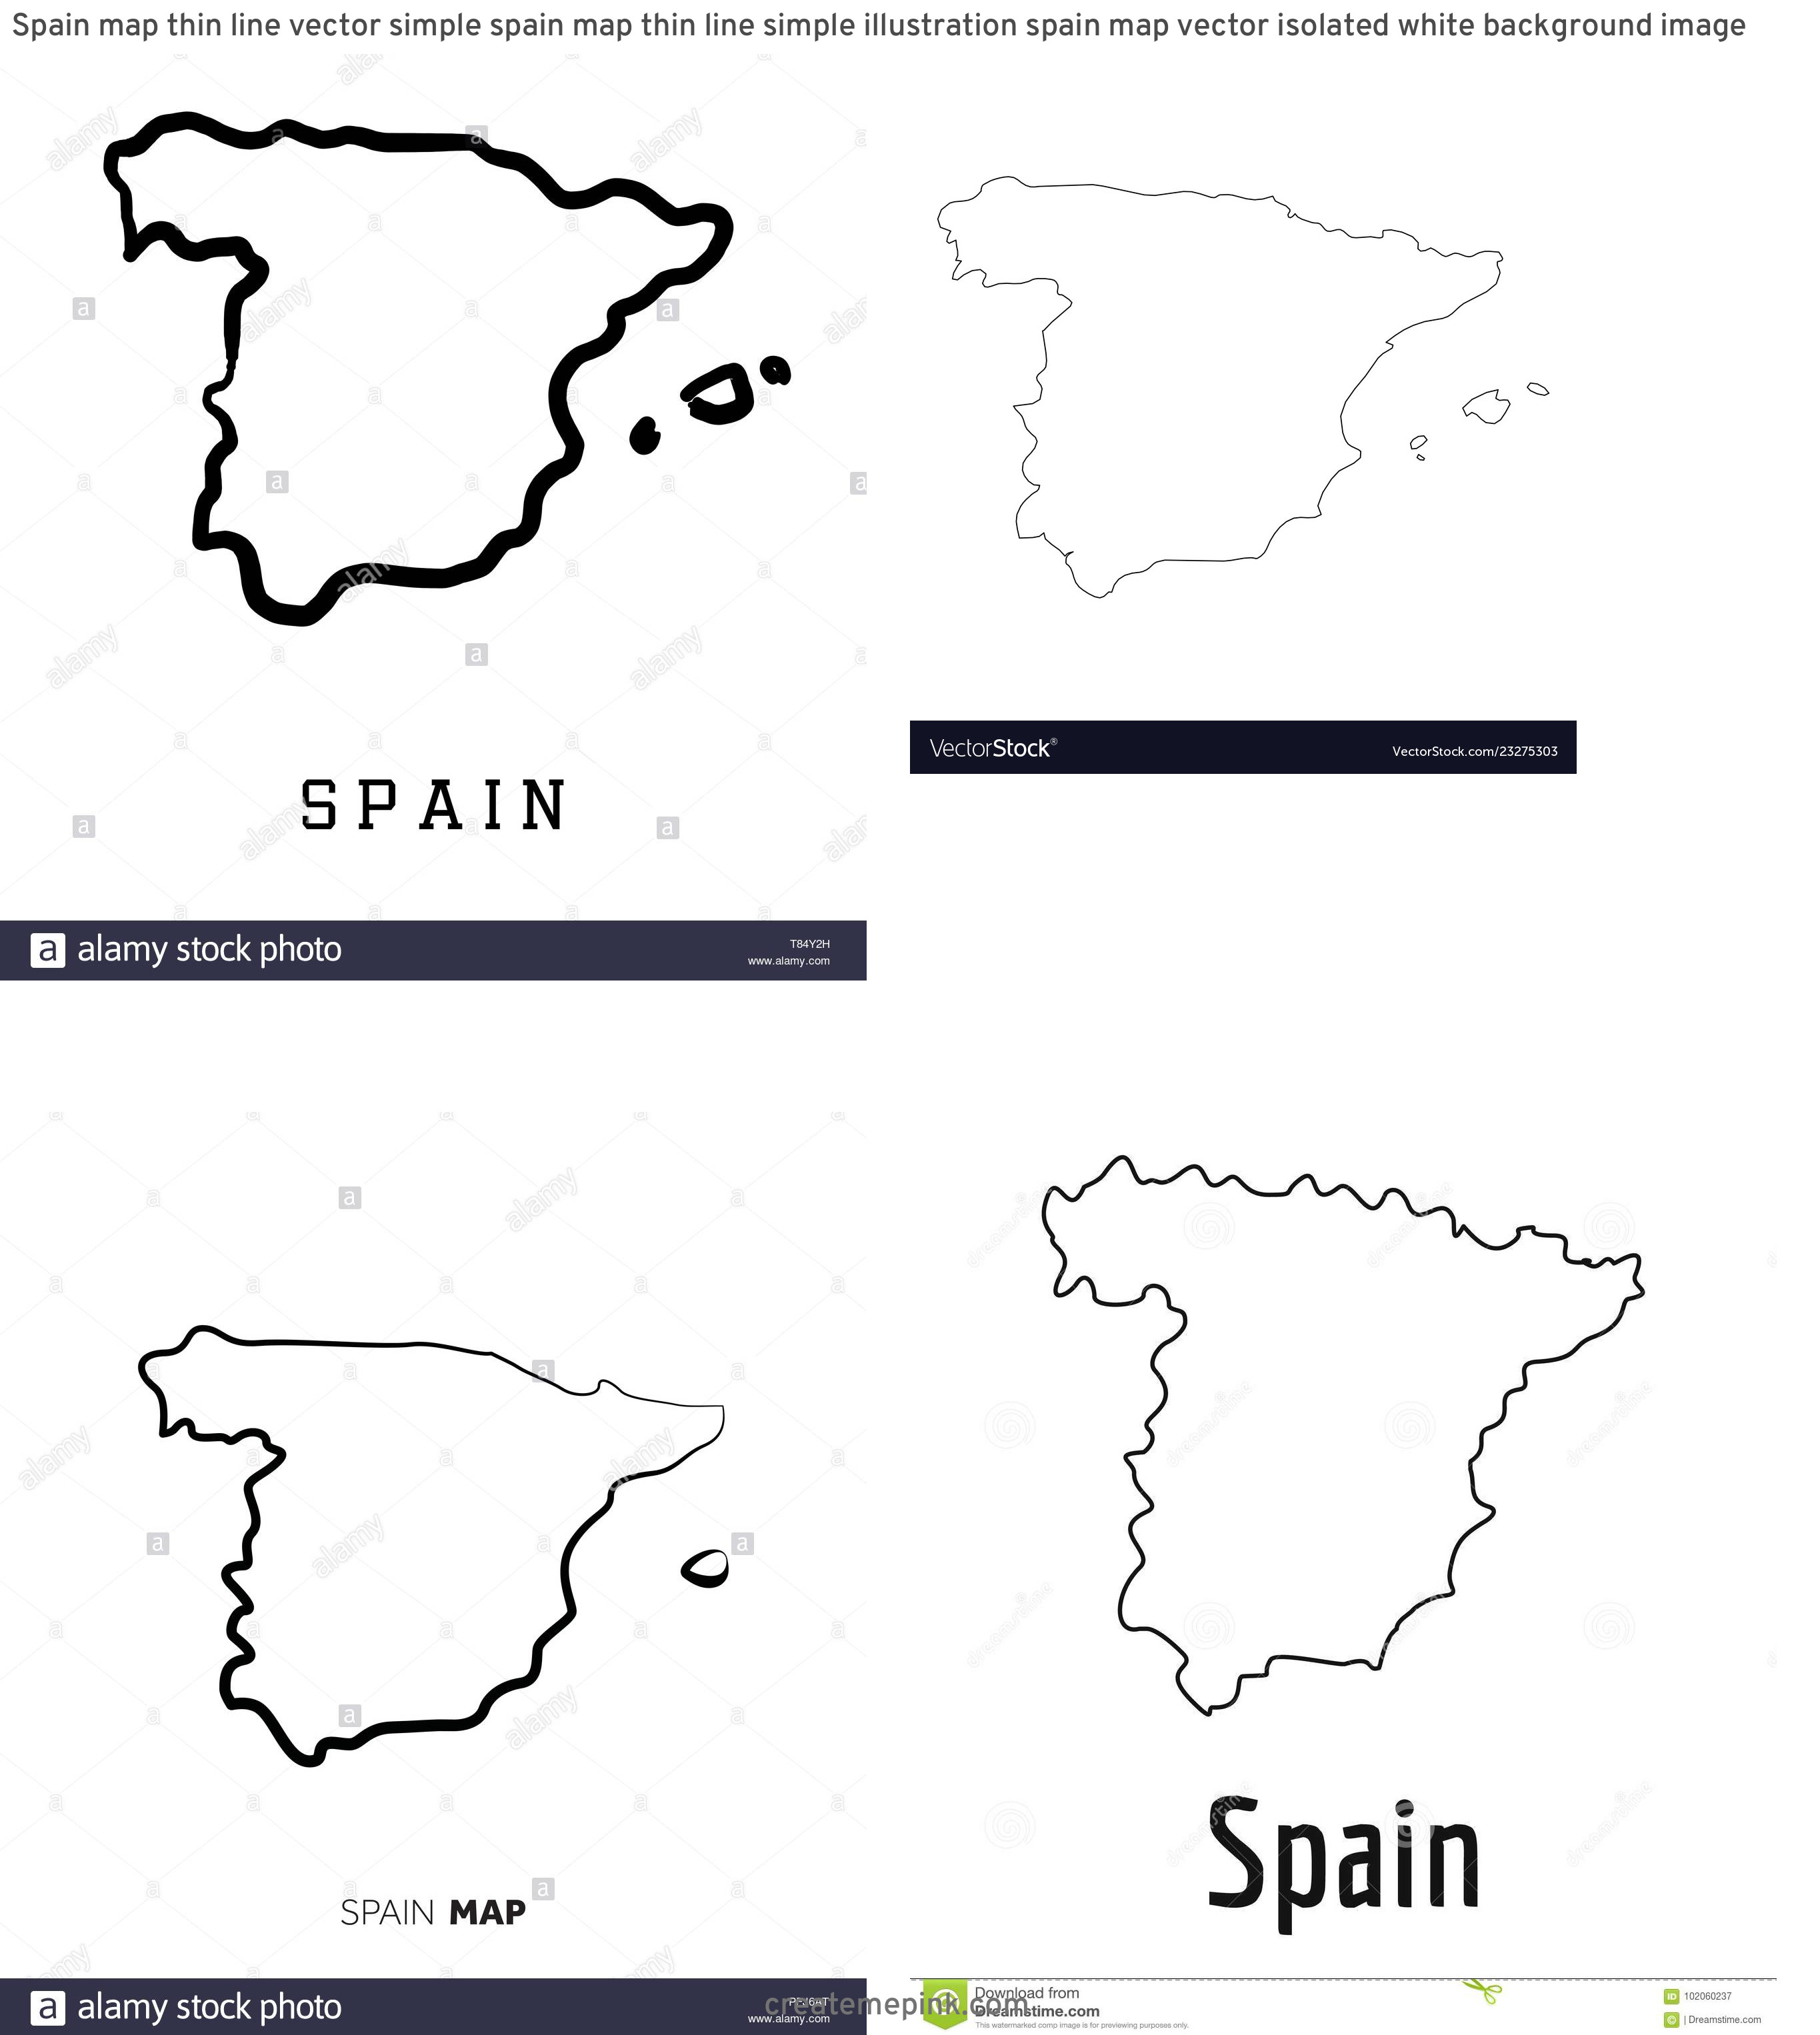 Spain Country Vectors Line: Spain Map Thin Line Vector Simple Spain Map Thin Line Simple Illustration Spain Map Vector Isolated White Background Image